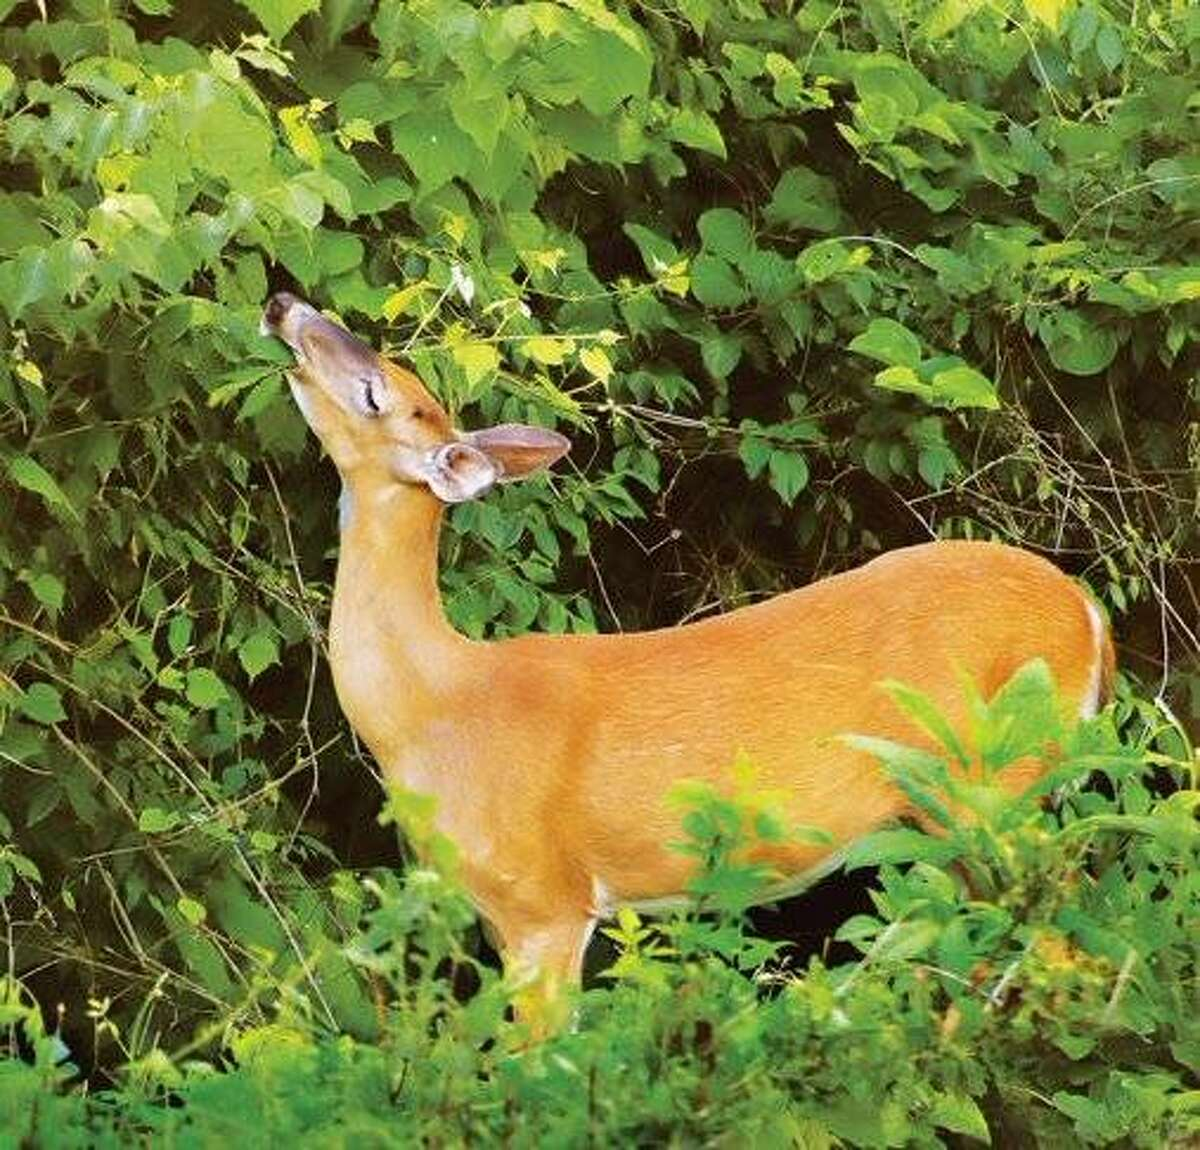 FILE - A deer dines in an Alton, Illinois backyard. According to the USDA, deer in four states were discovered to have antibodies to the virus that causes COVID-19 in humans.